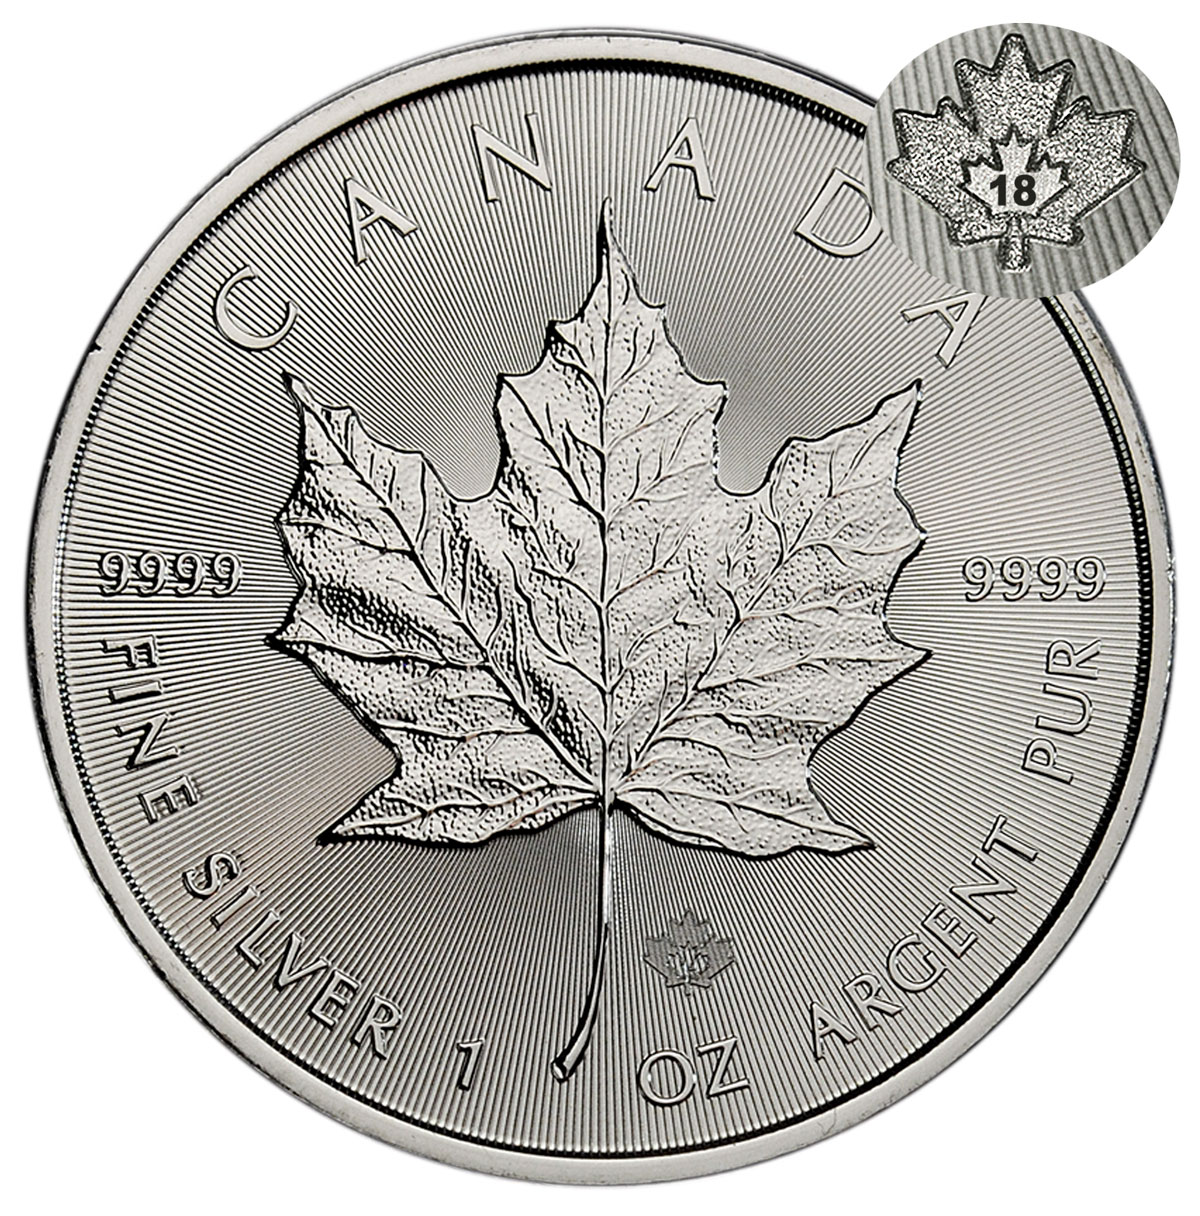 2018 Canada 1 oz Silver Maple Leaf $5 Coin GEM BU